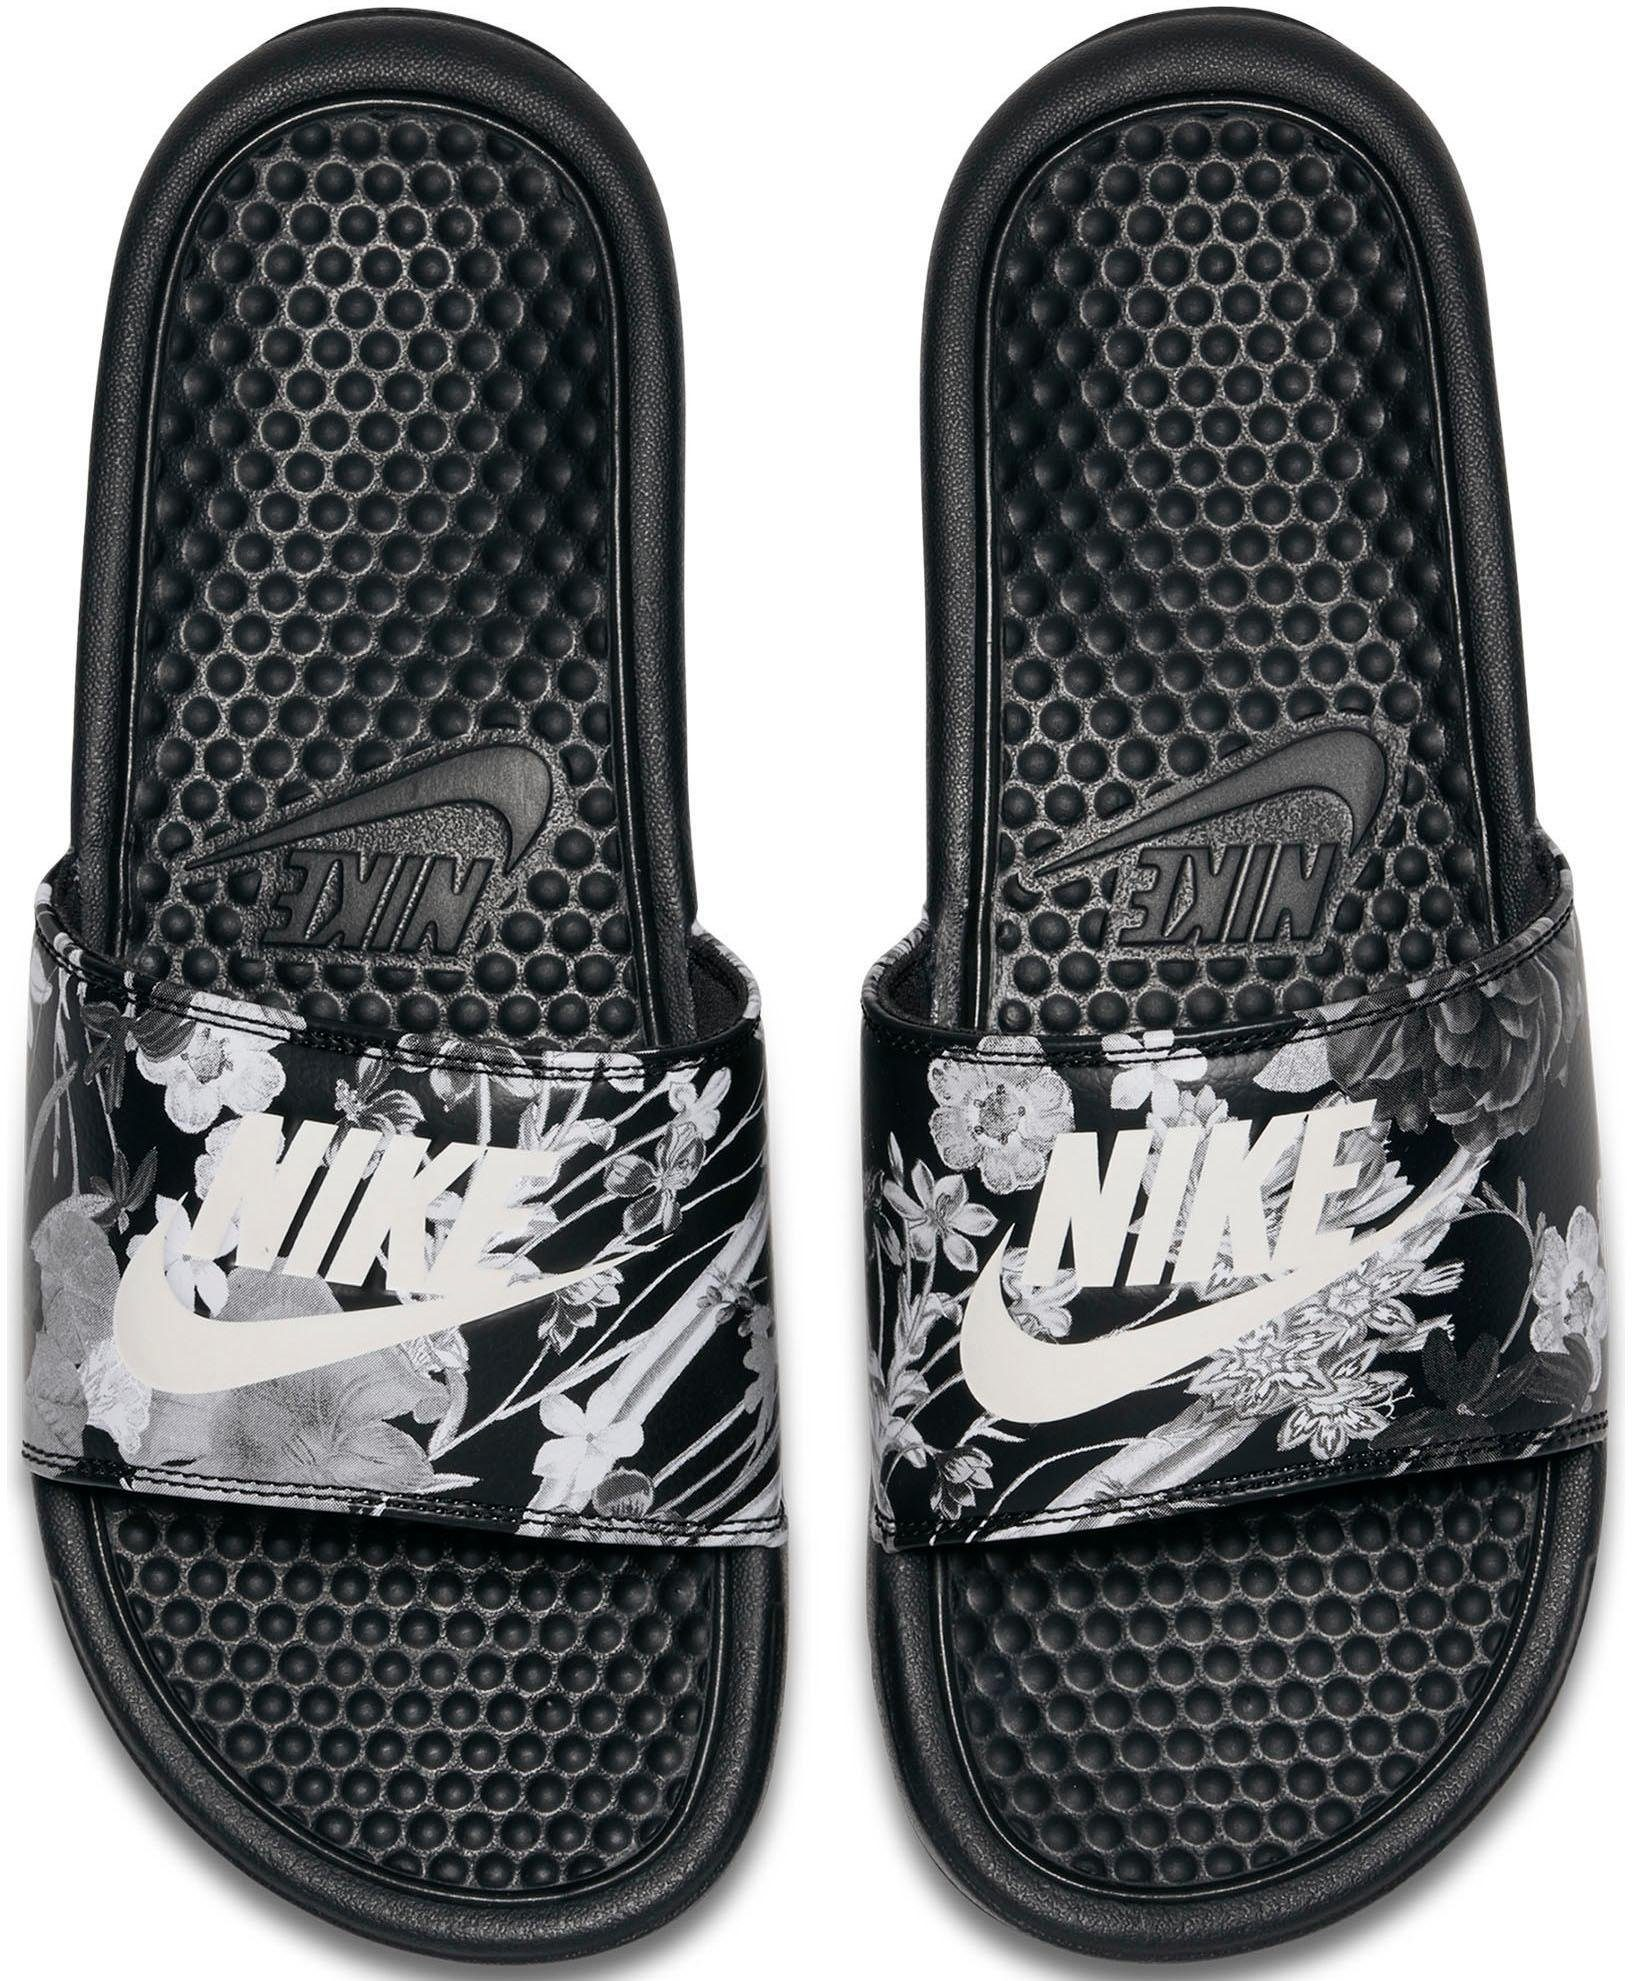 Nike Sportswear »Wmns Benassi Just Do It« Badesandale online kaufen | OTTO